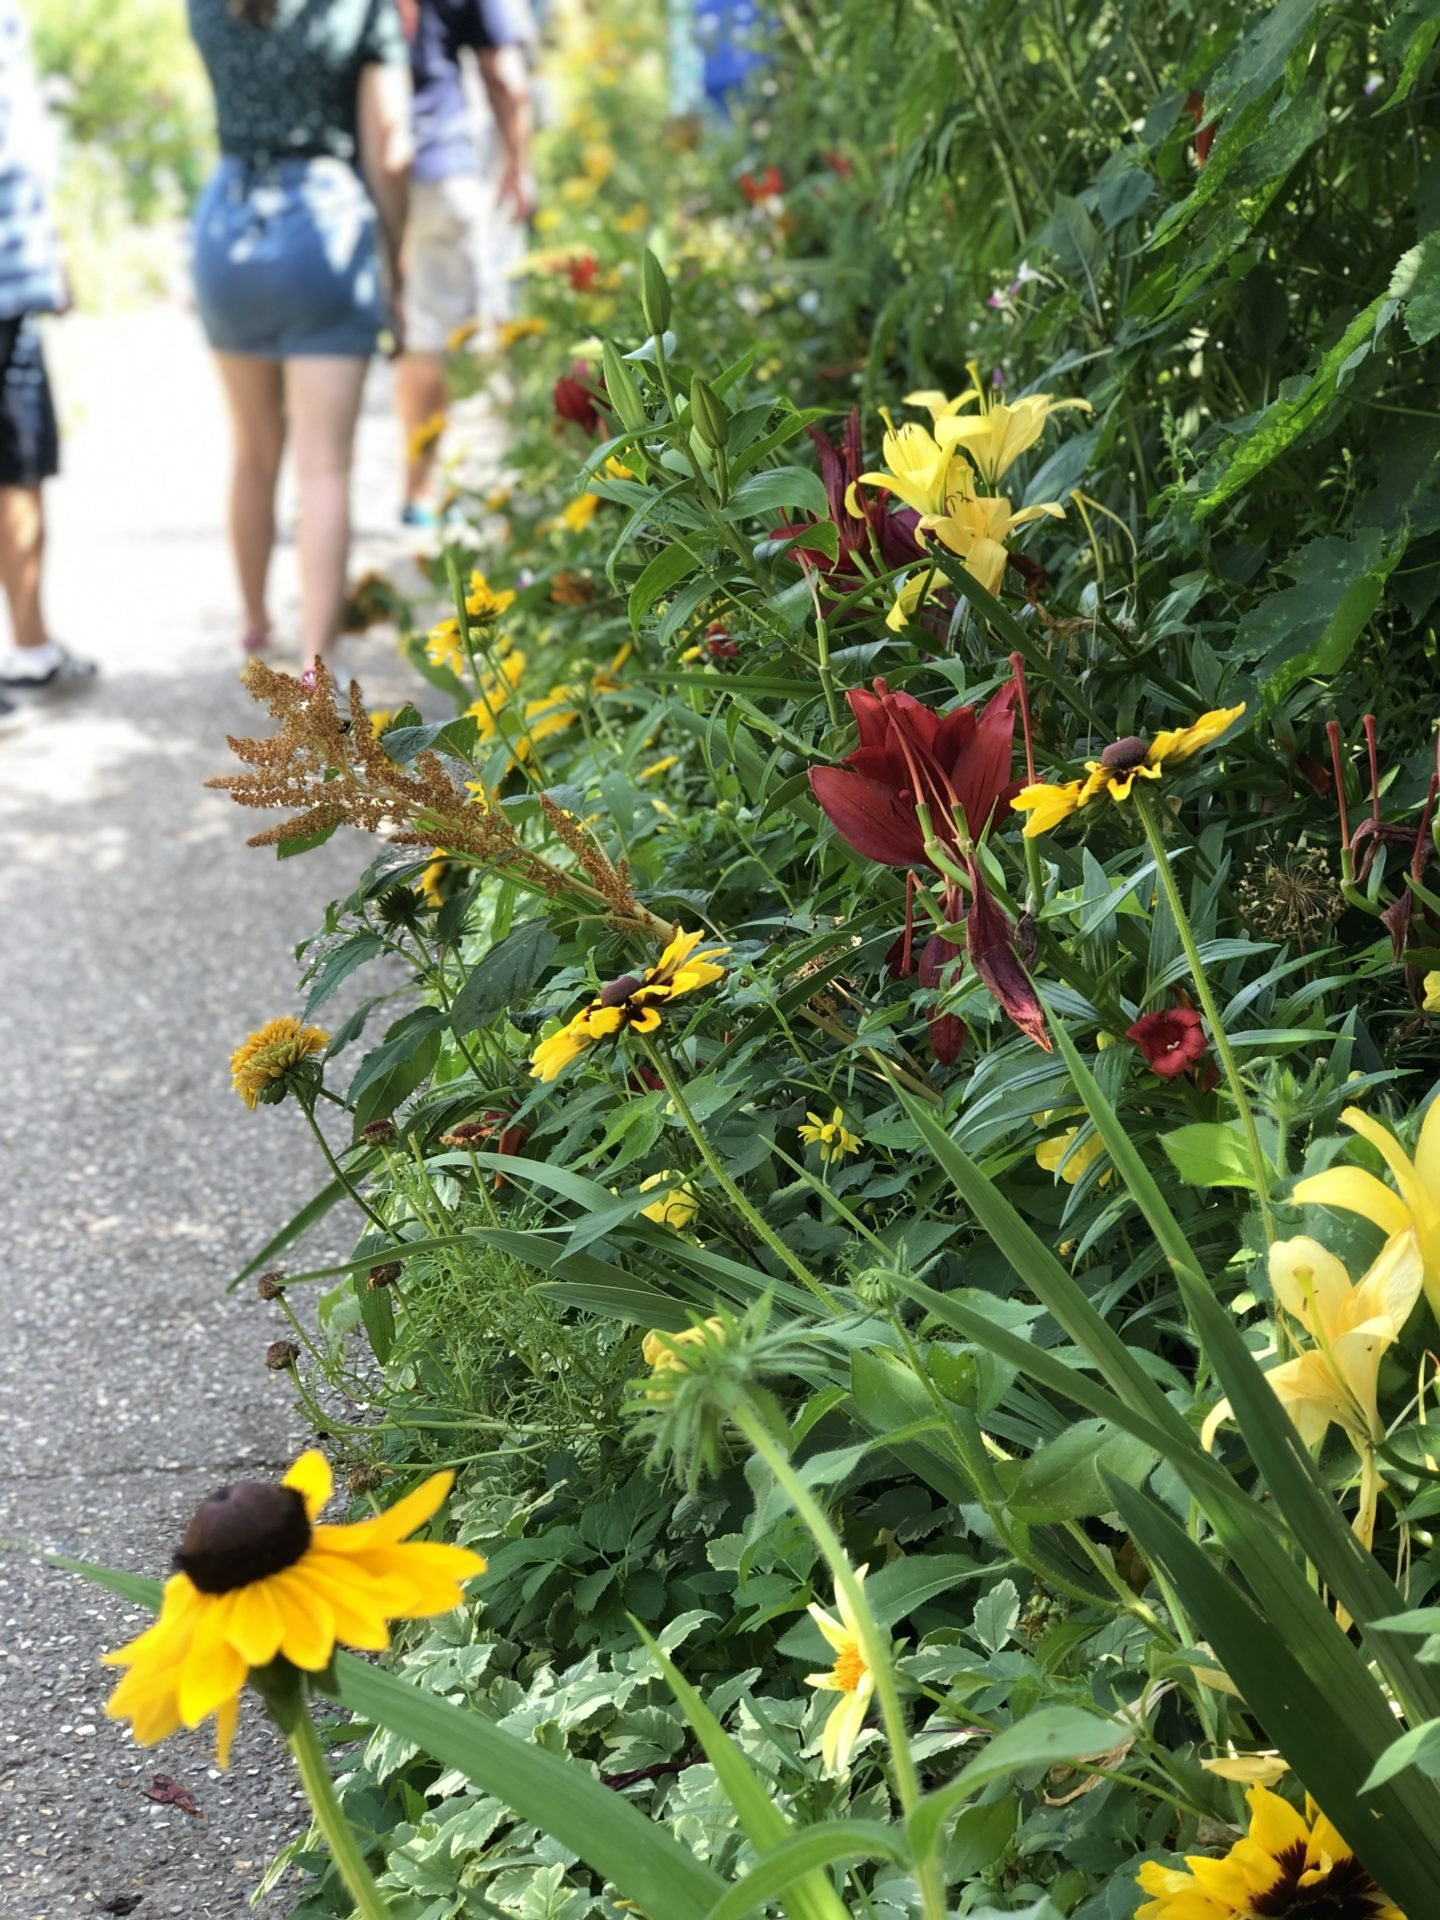 A bed of yellow and red flowers in the Clos Normand Garden at the Foundation of Claude Monet.